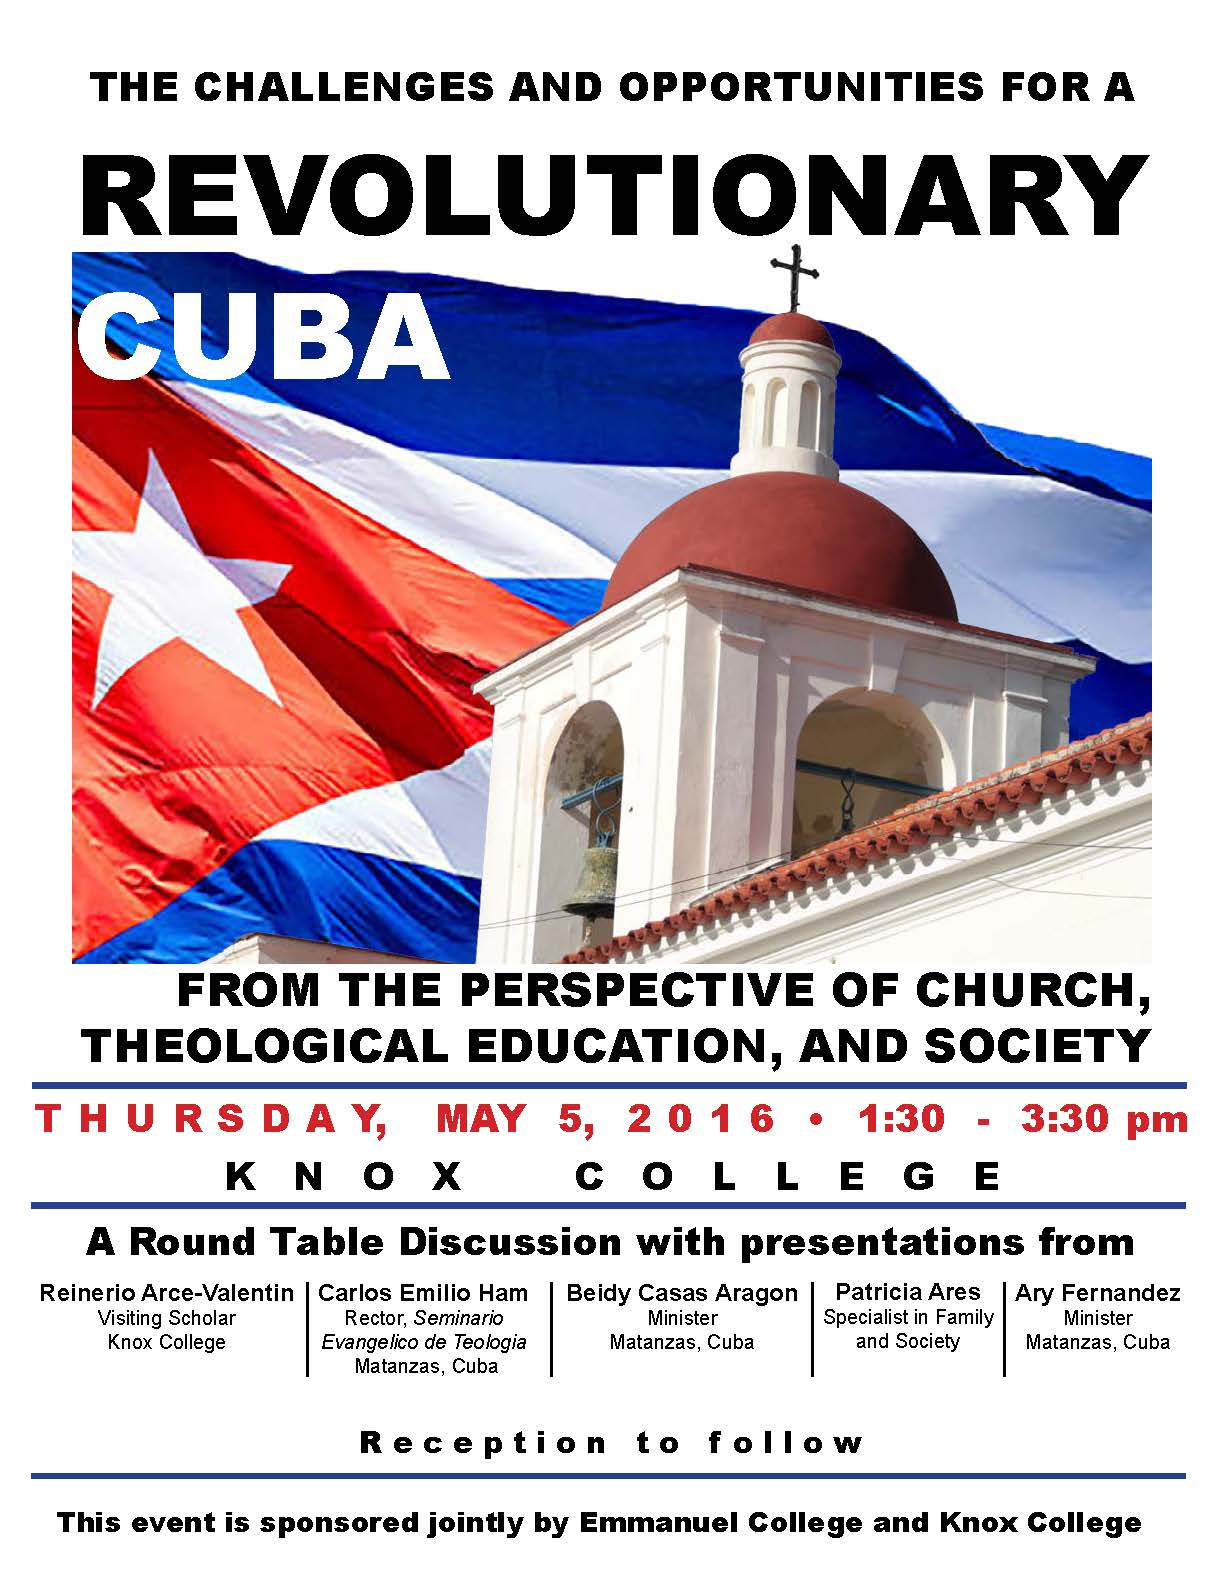 The Challenges and Opportunities for a Revolutionary Cuba roundtable discussion